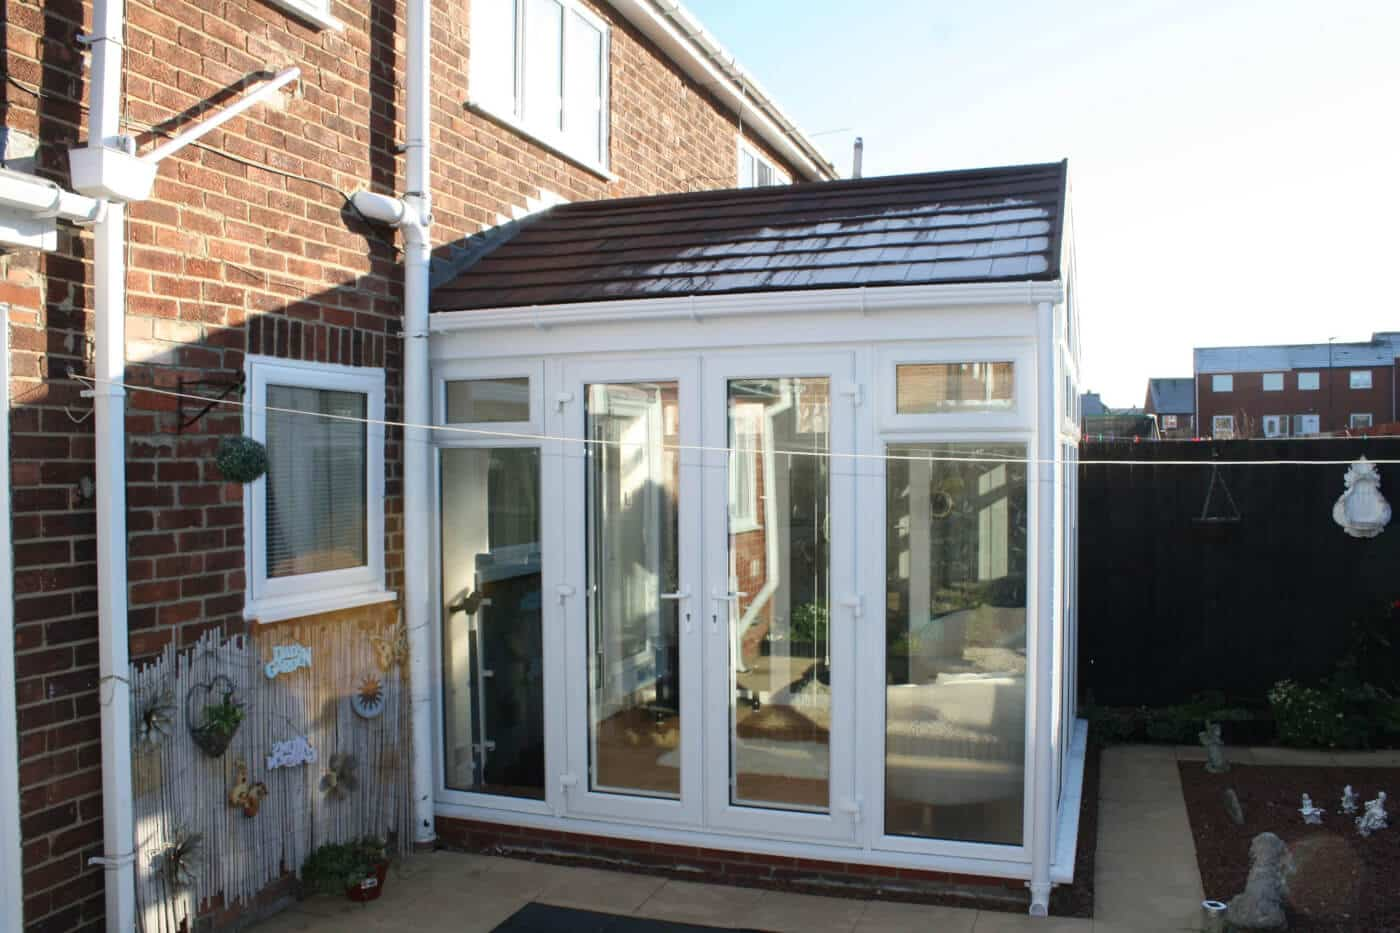 Gable conservatory with black tiled roof